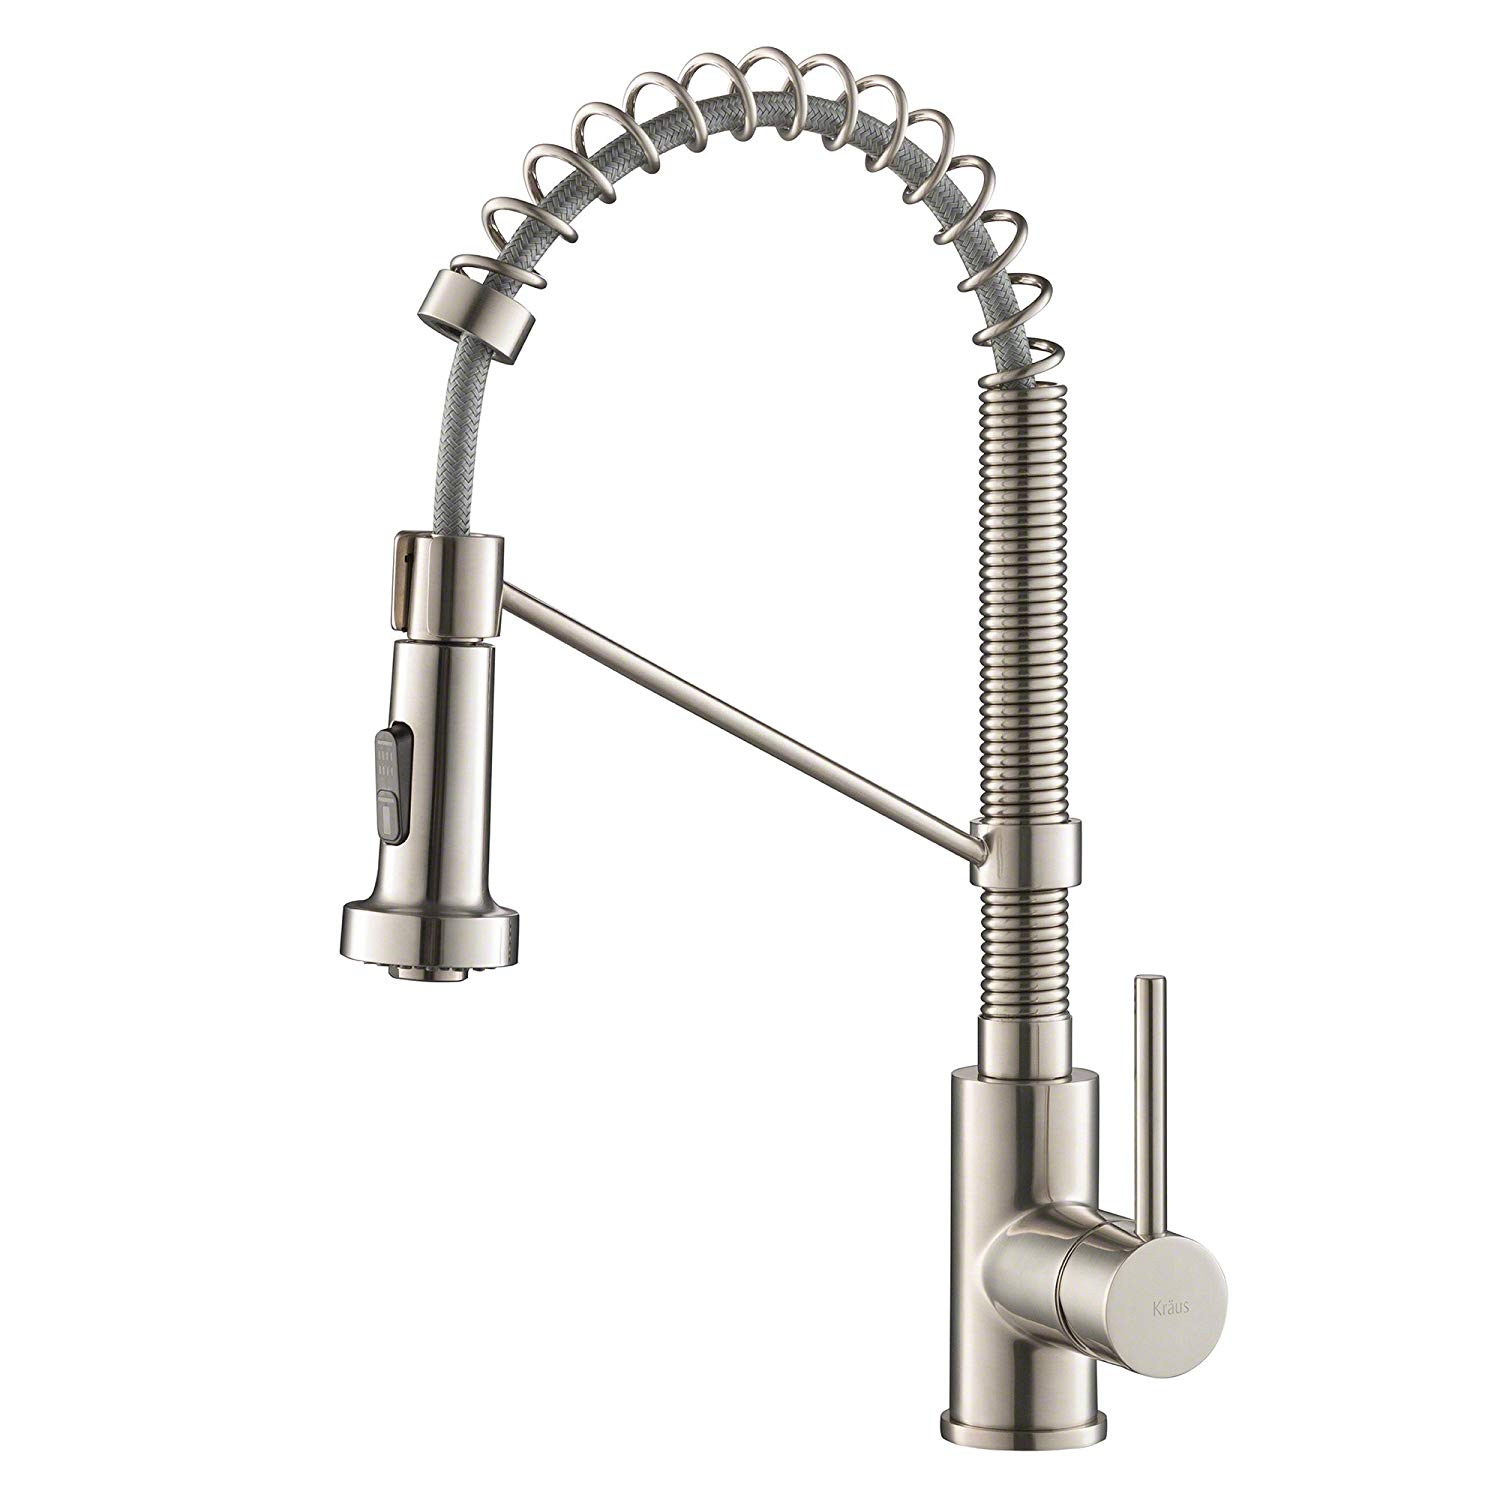 Best Kitchen Faucet Reviews 2019: Top Rated Brands (for ...